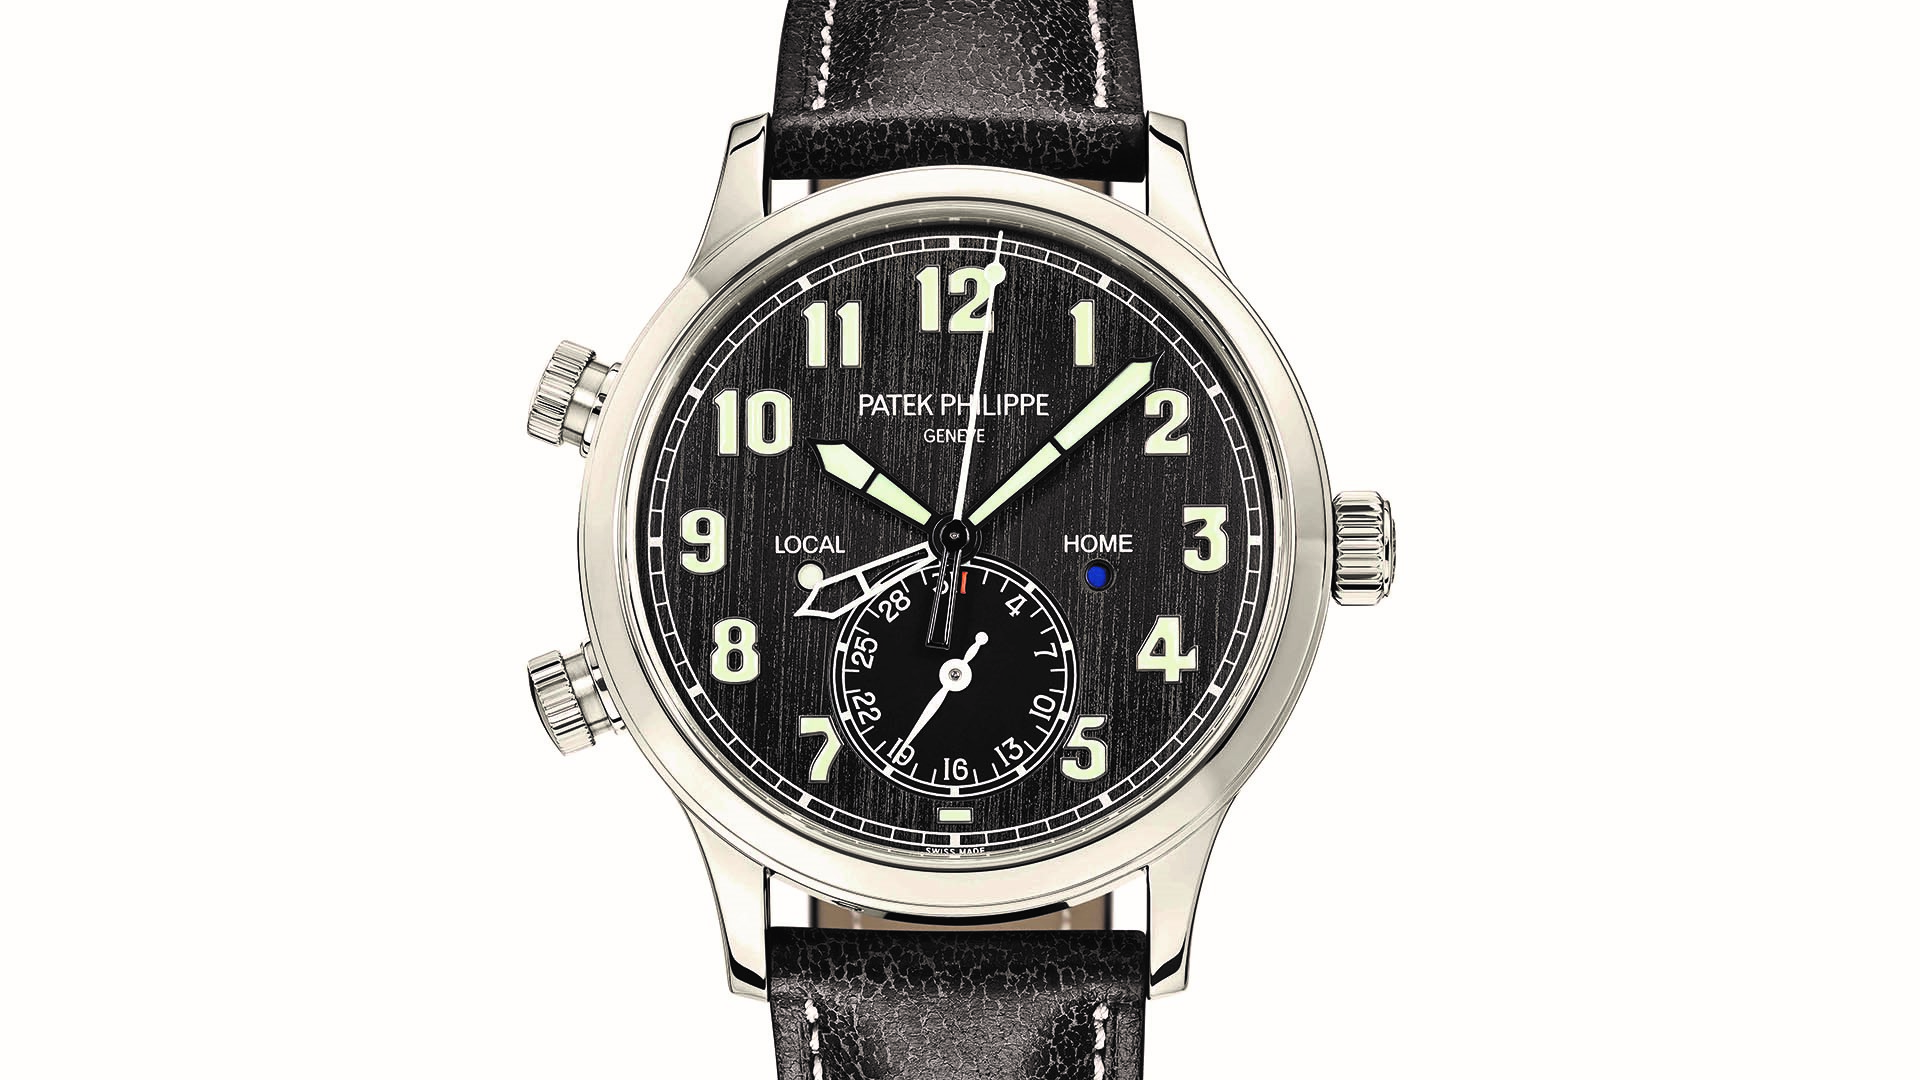 Calatrava Pilot Travel Time Referenz 5524 von Patek Philippe.